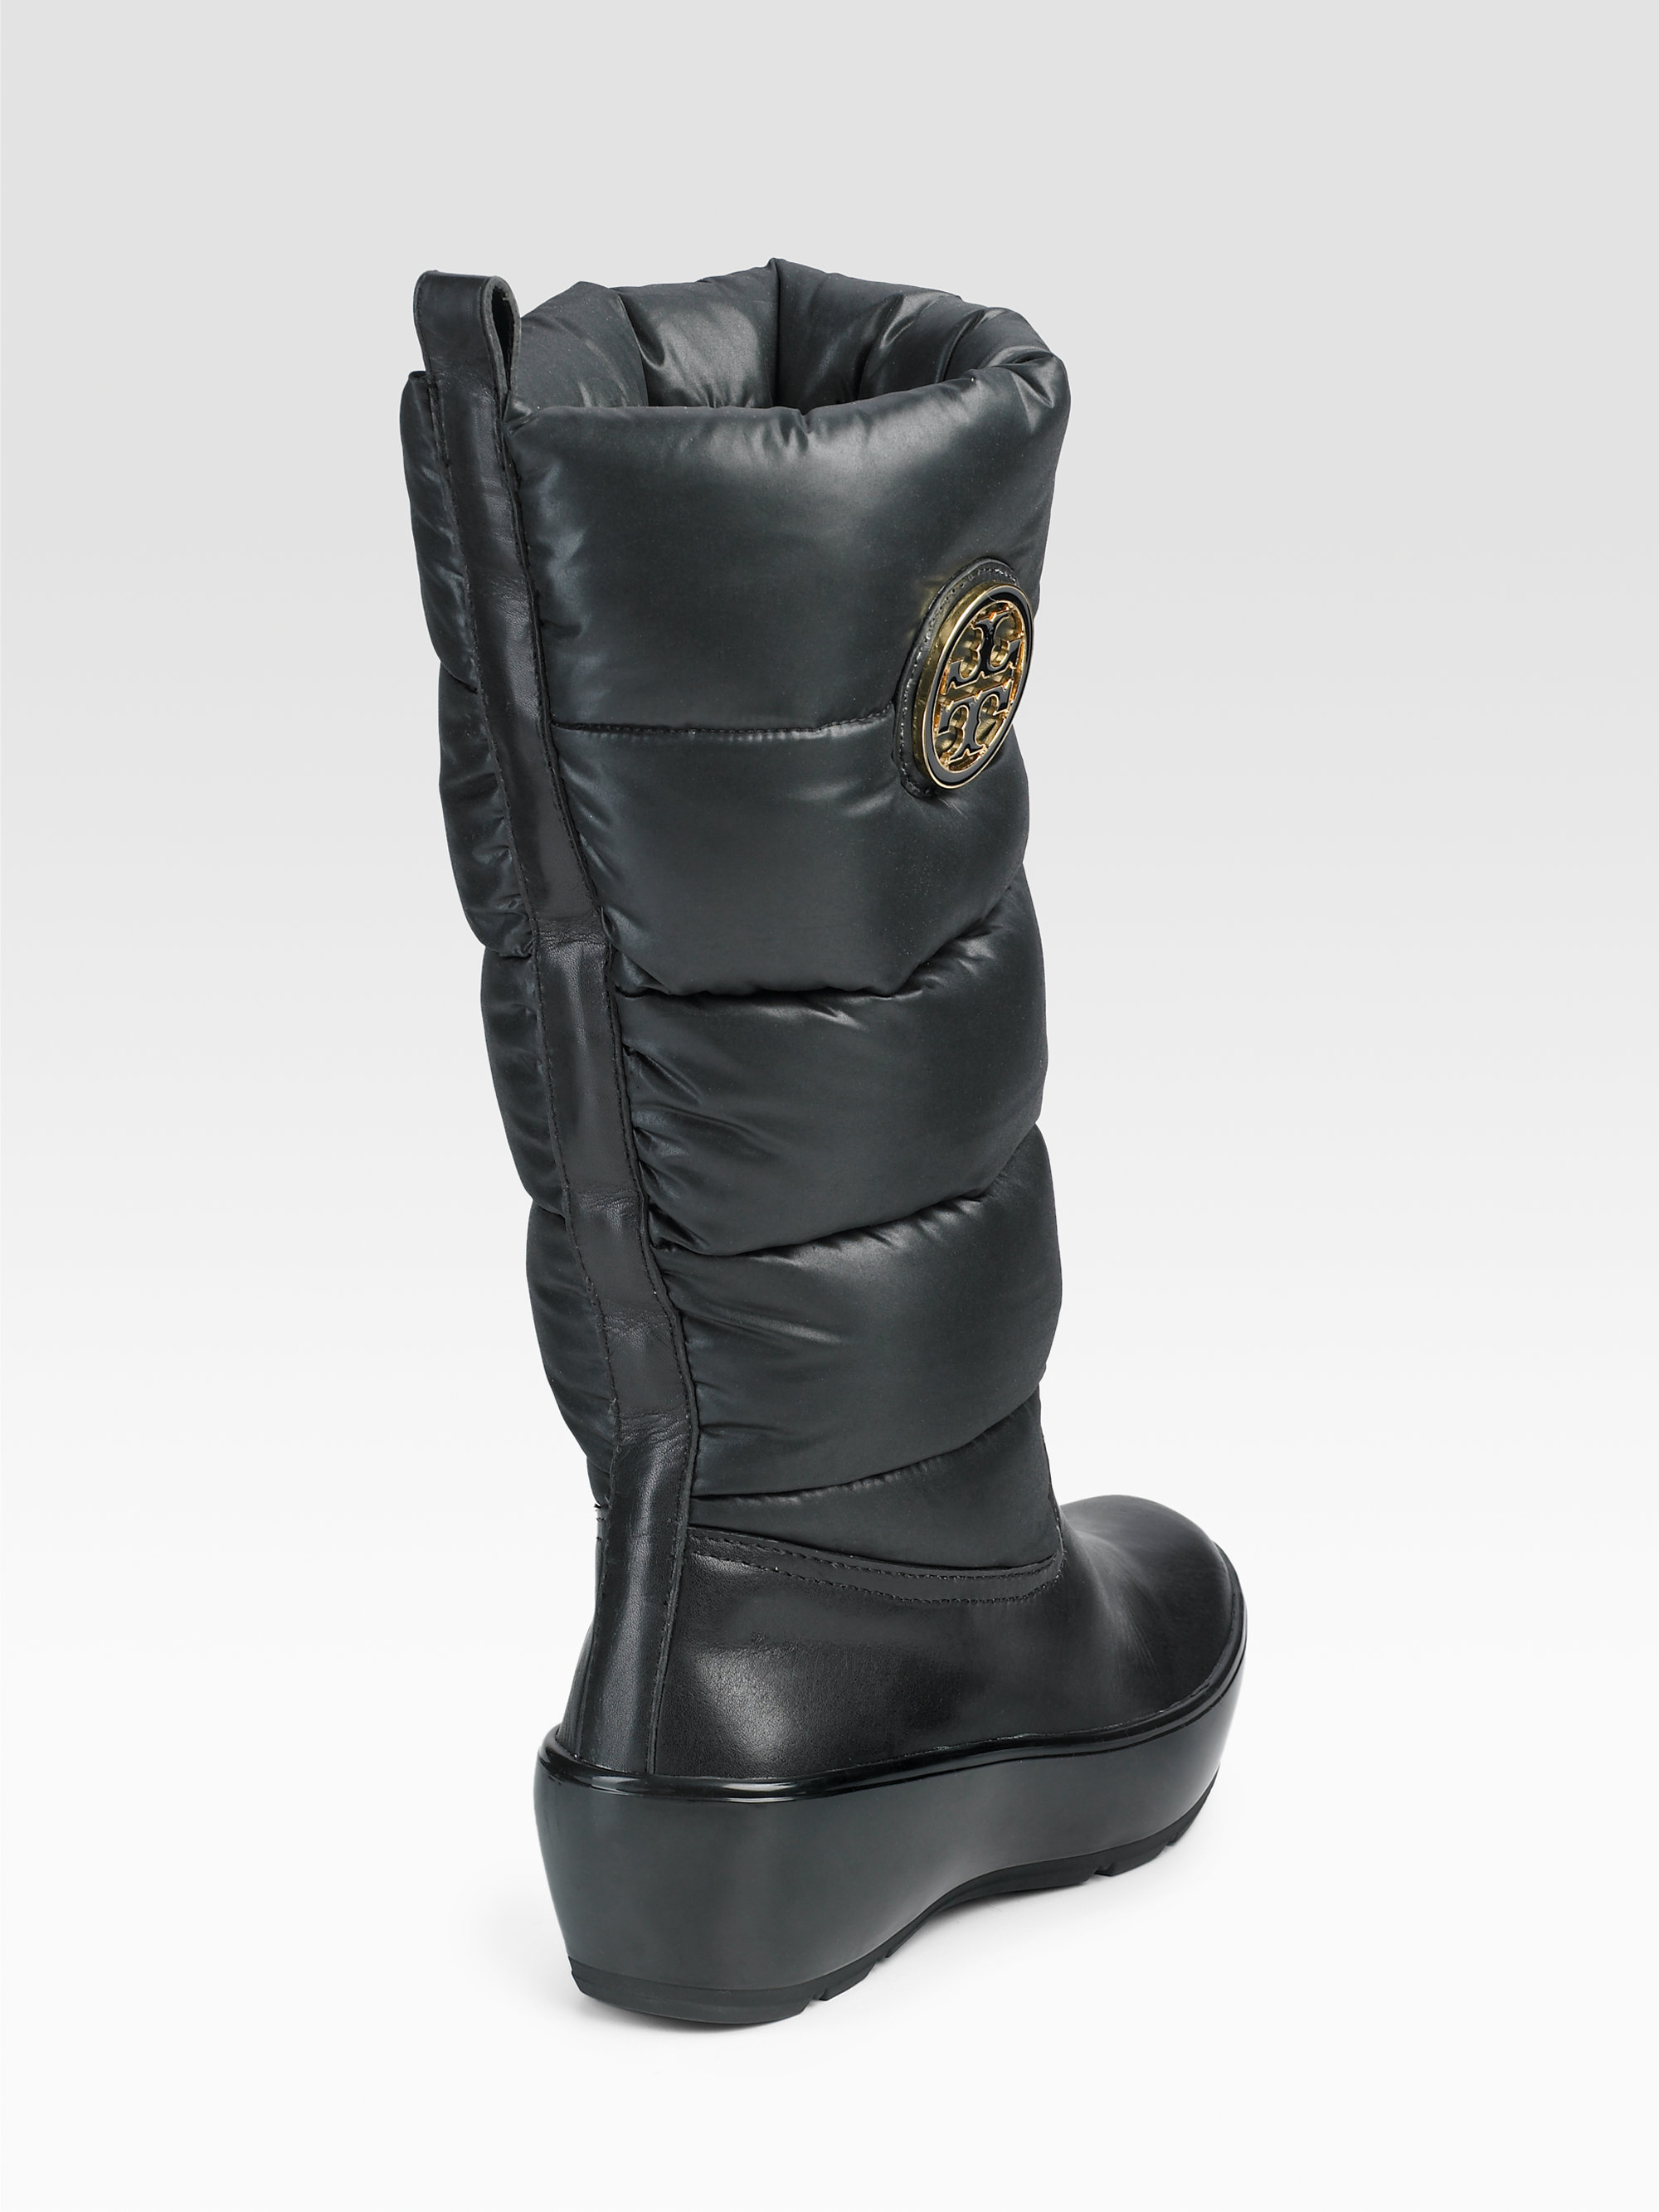 c29c0472212 Lyst - Tory Burch Puffer Boots in Black